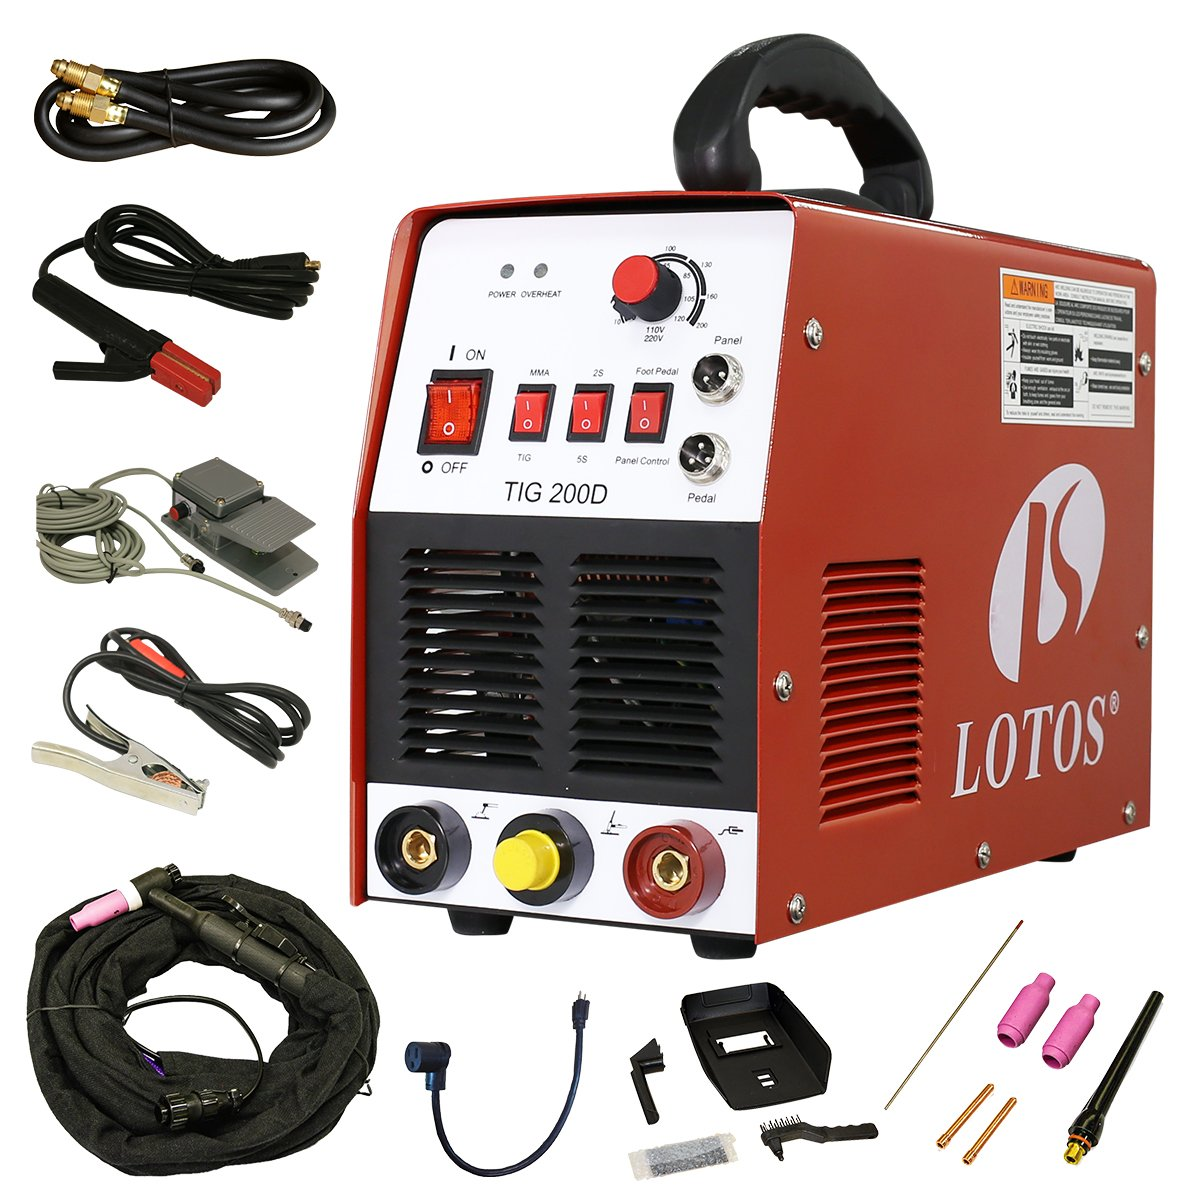 Lotos TIG/ Stick TIG200-DC Welder 200Amp with pedal inverter Power Welding for stainless steel, carbon, copper and other metal by Lotos Technology (Image #1)